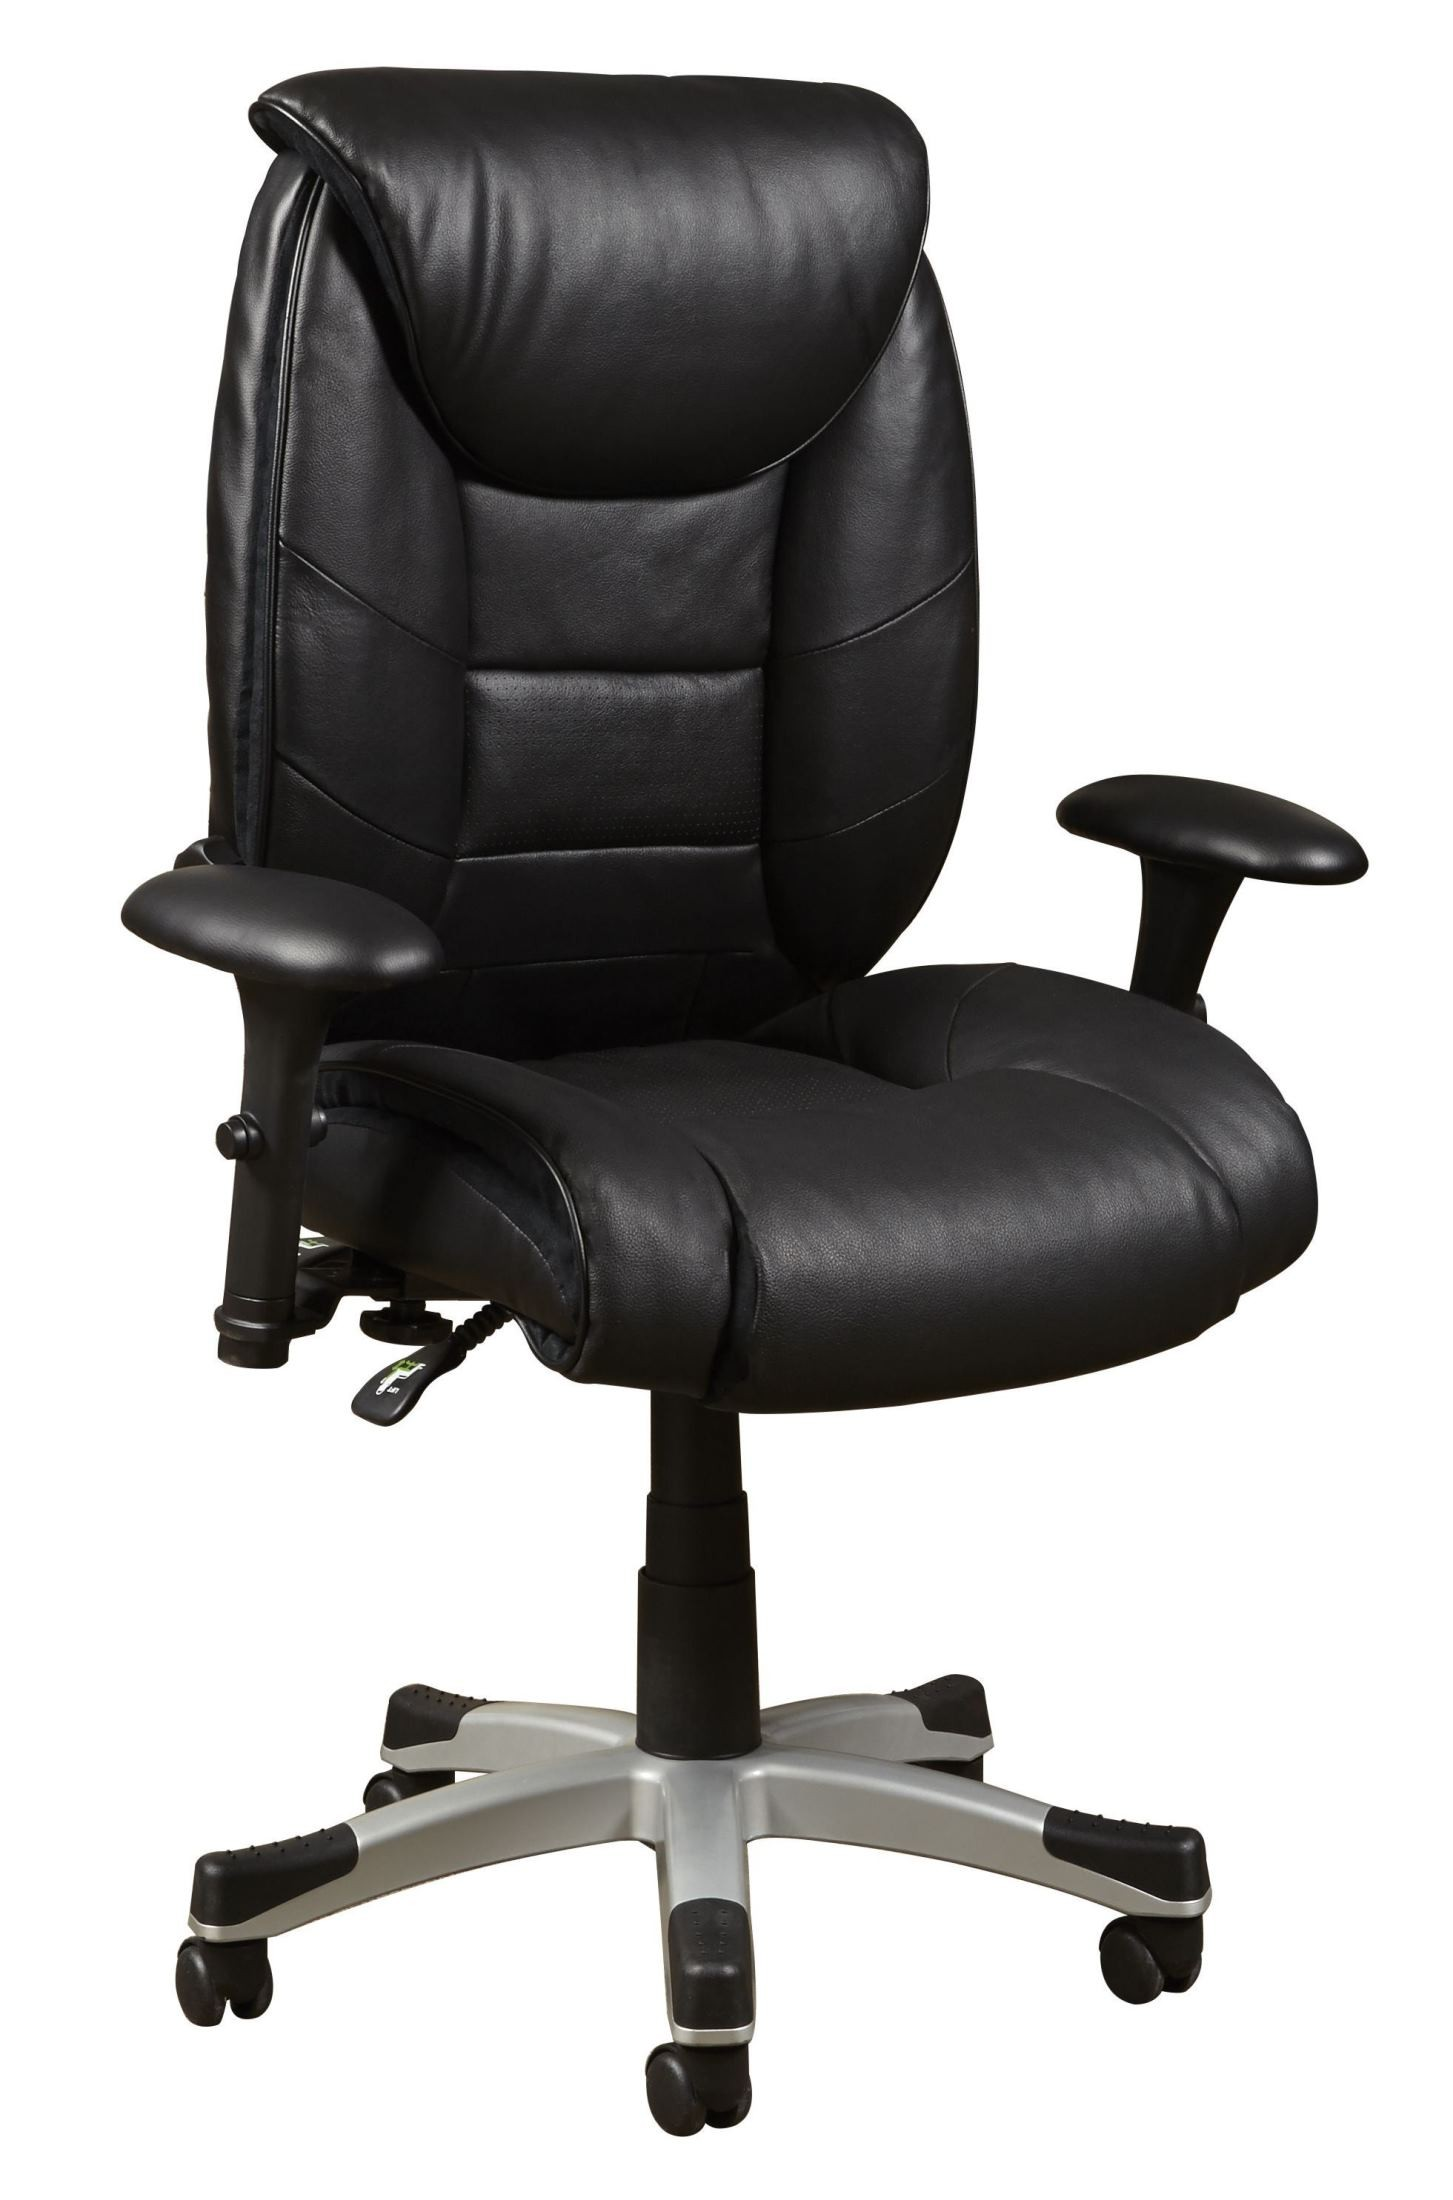 Bovina Black Memory Foam Chair from Pulaski DS19424523